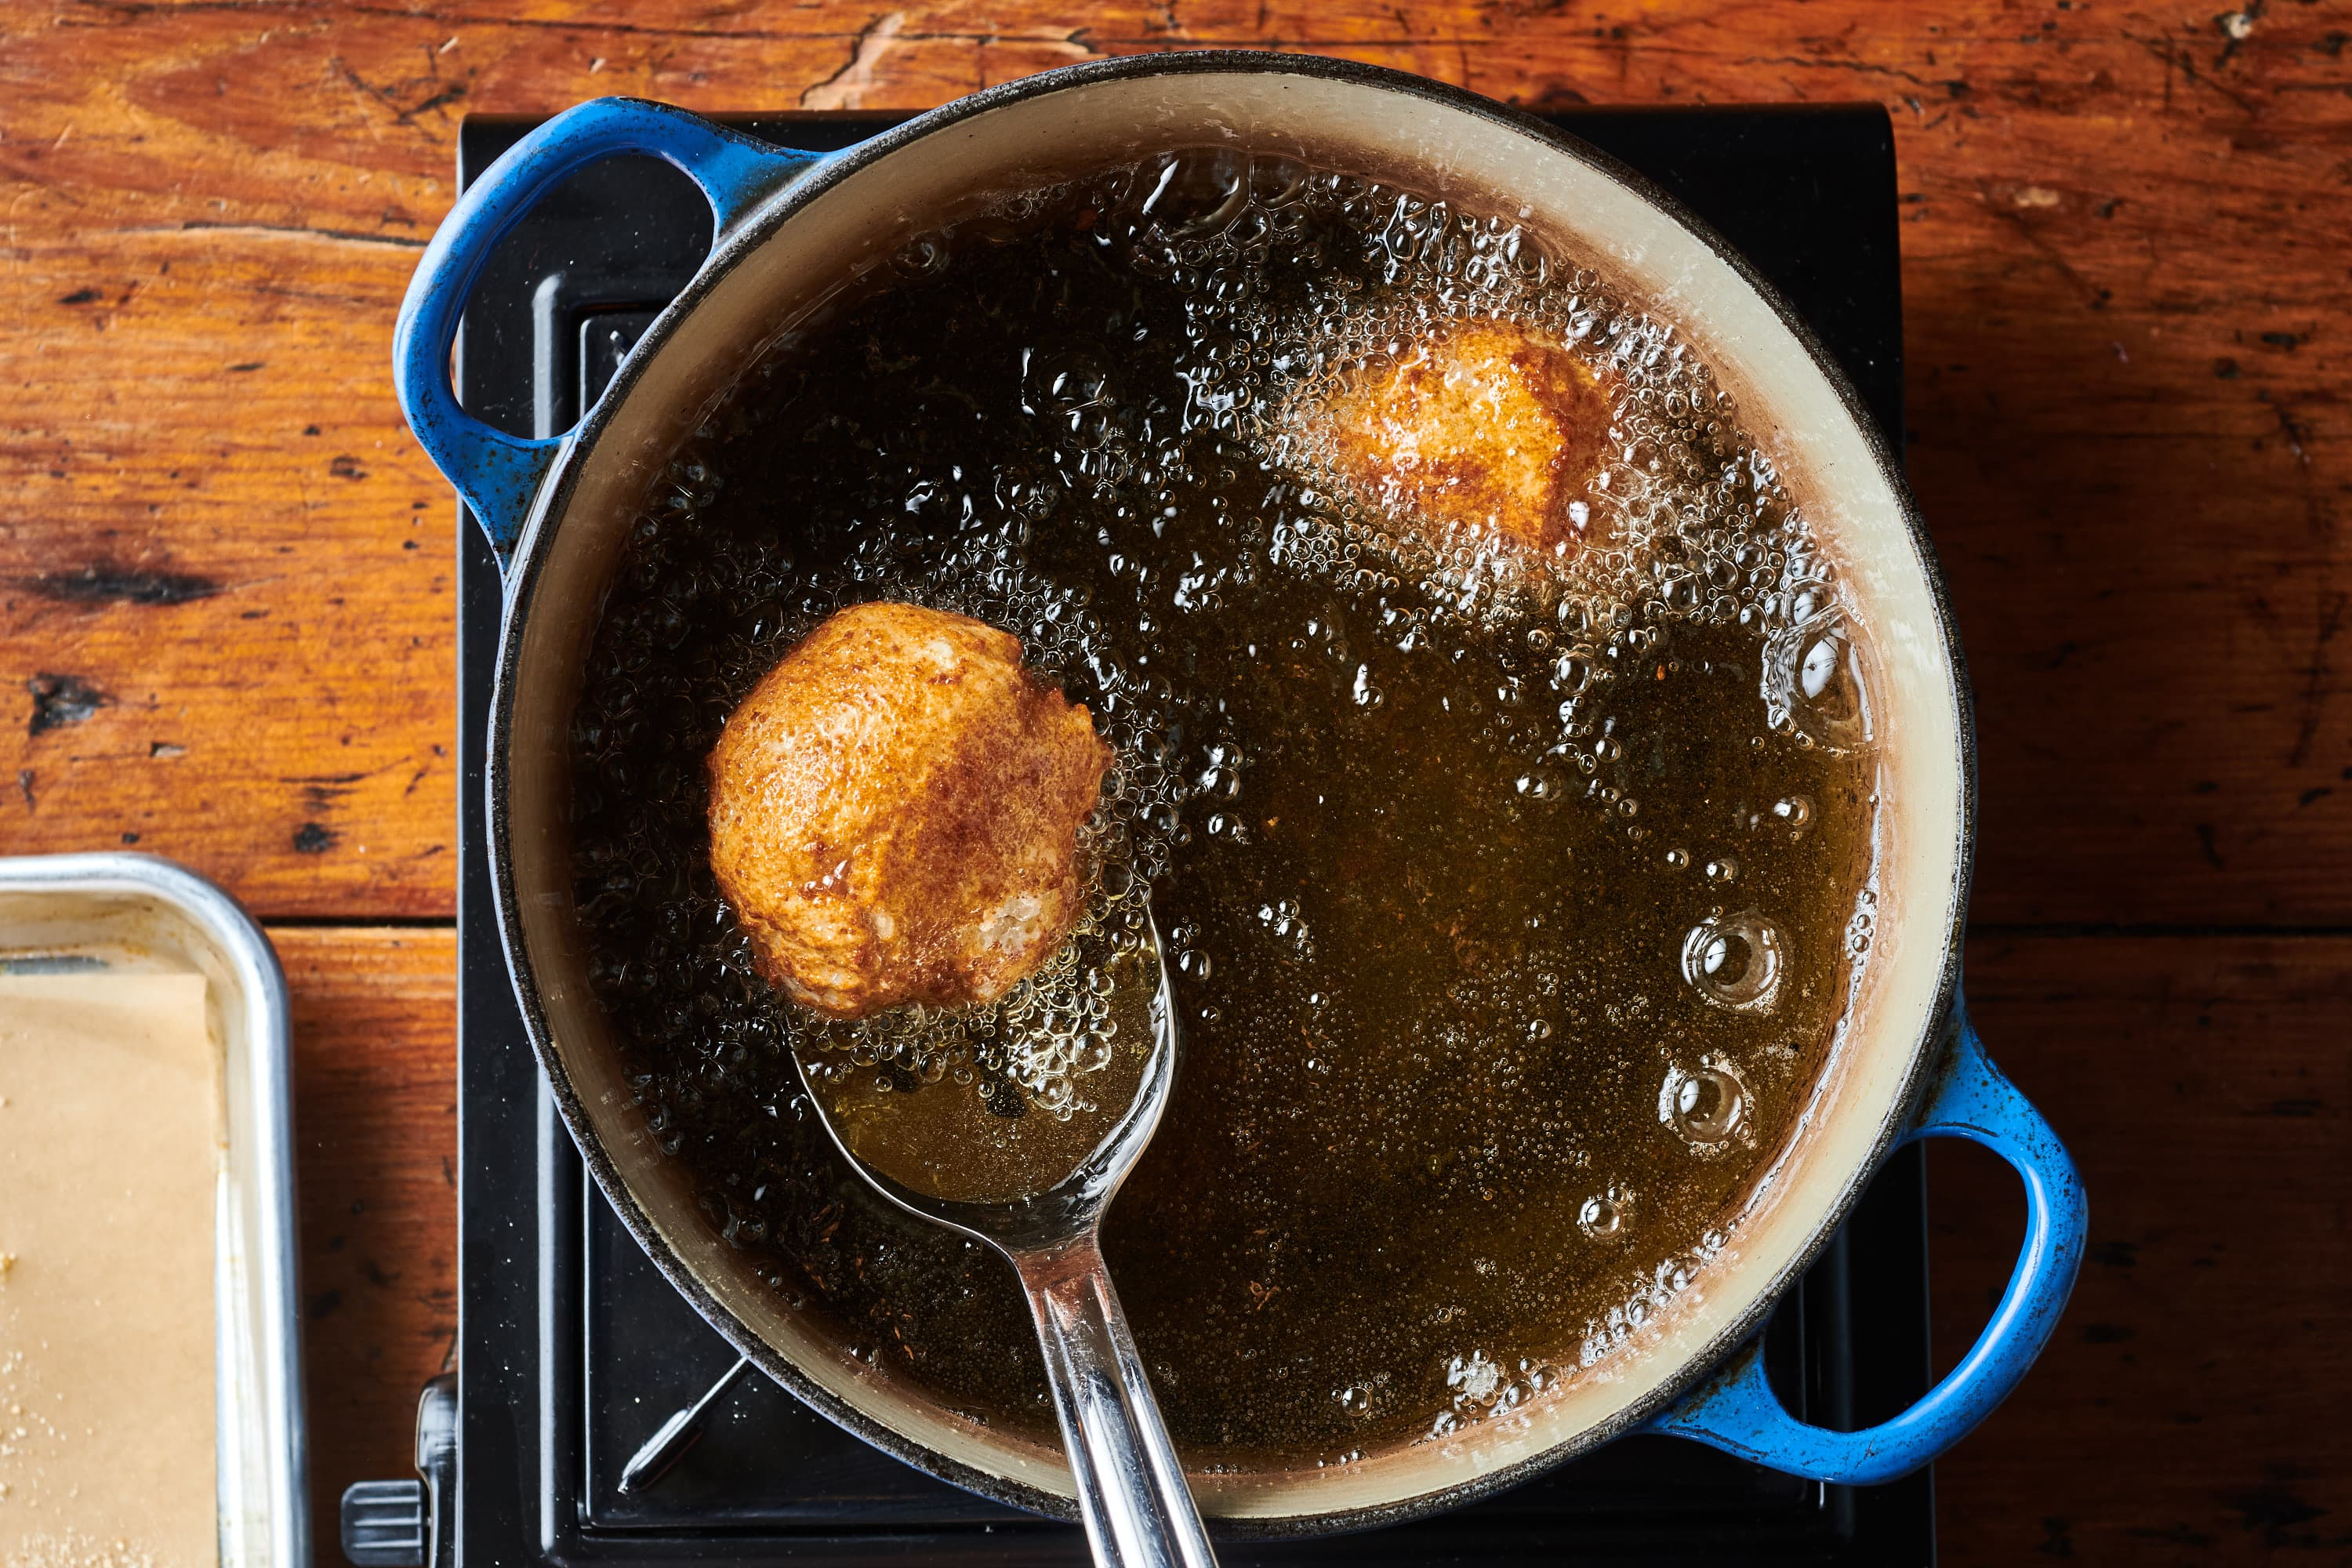 Mashed potato croquettes frying in oil.